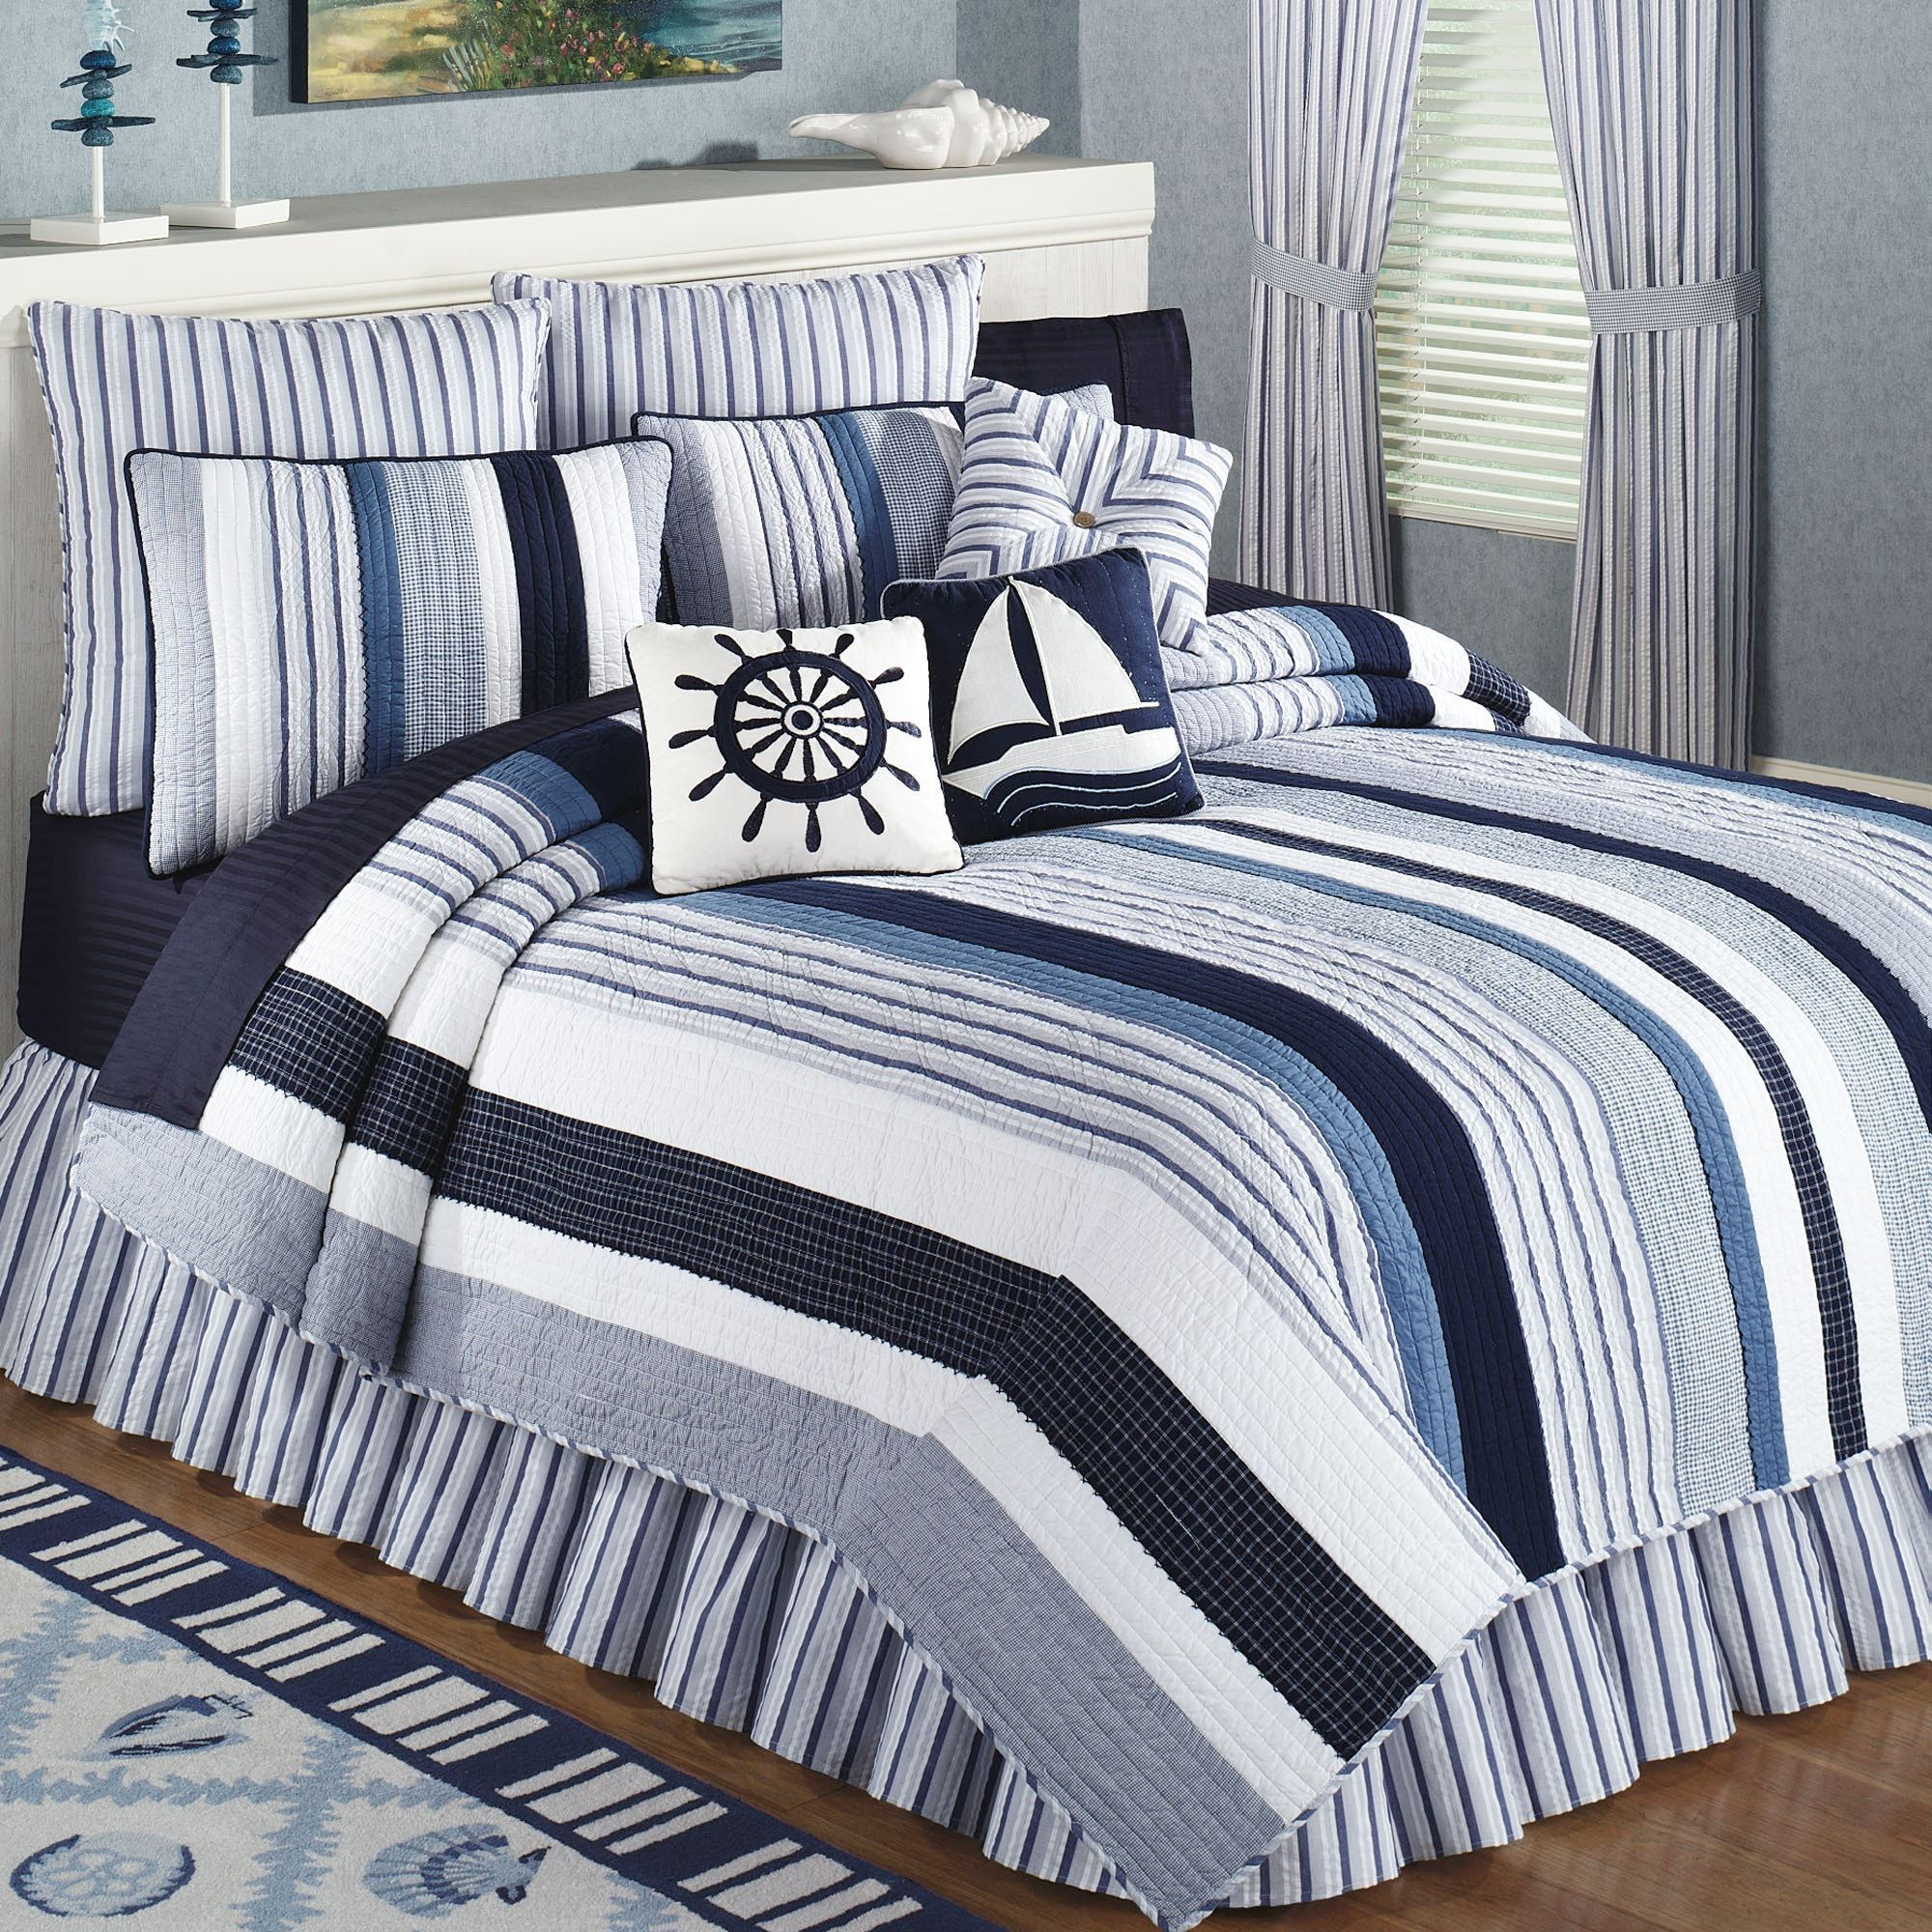 touch to zoom - Nautical Bedding